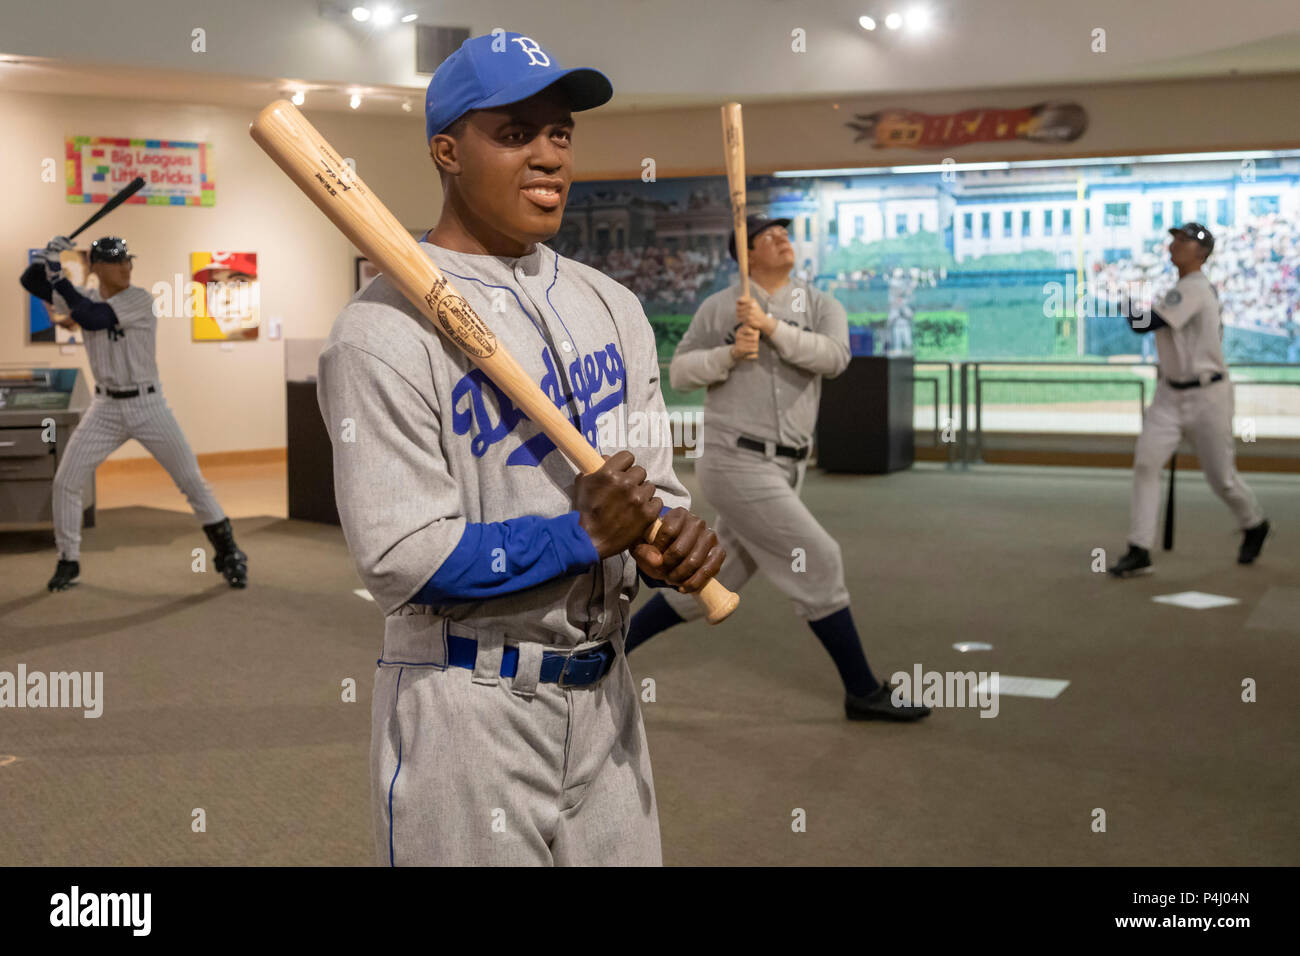 Louisville, Kentucky - A sculpture of Jackie Robinson with his baseball bat at the Louisville Slugger Museum and Factory. - Stock Image